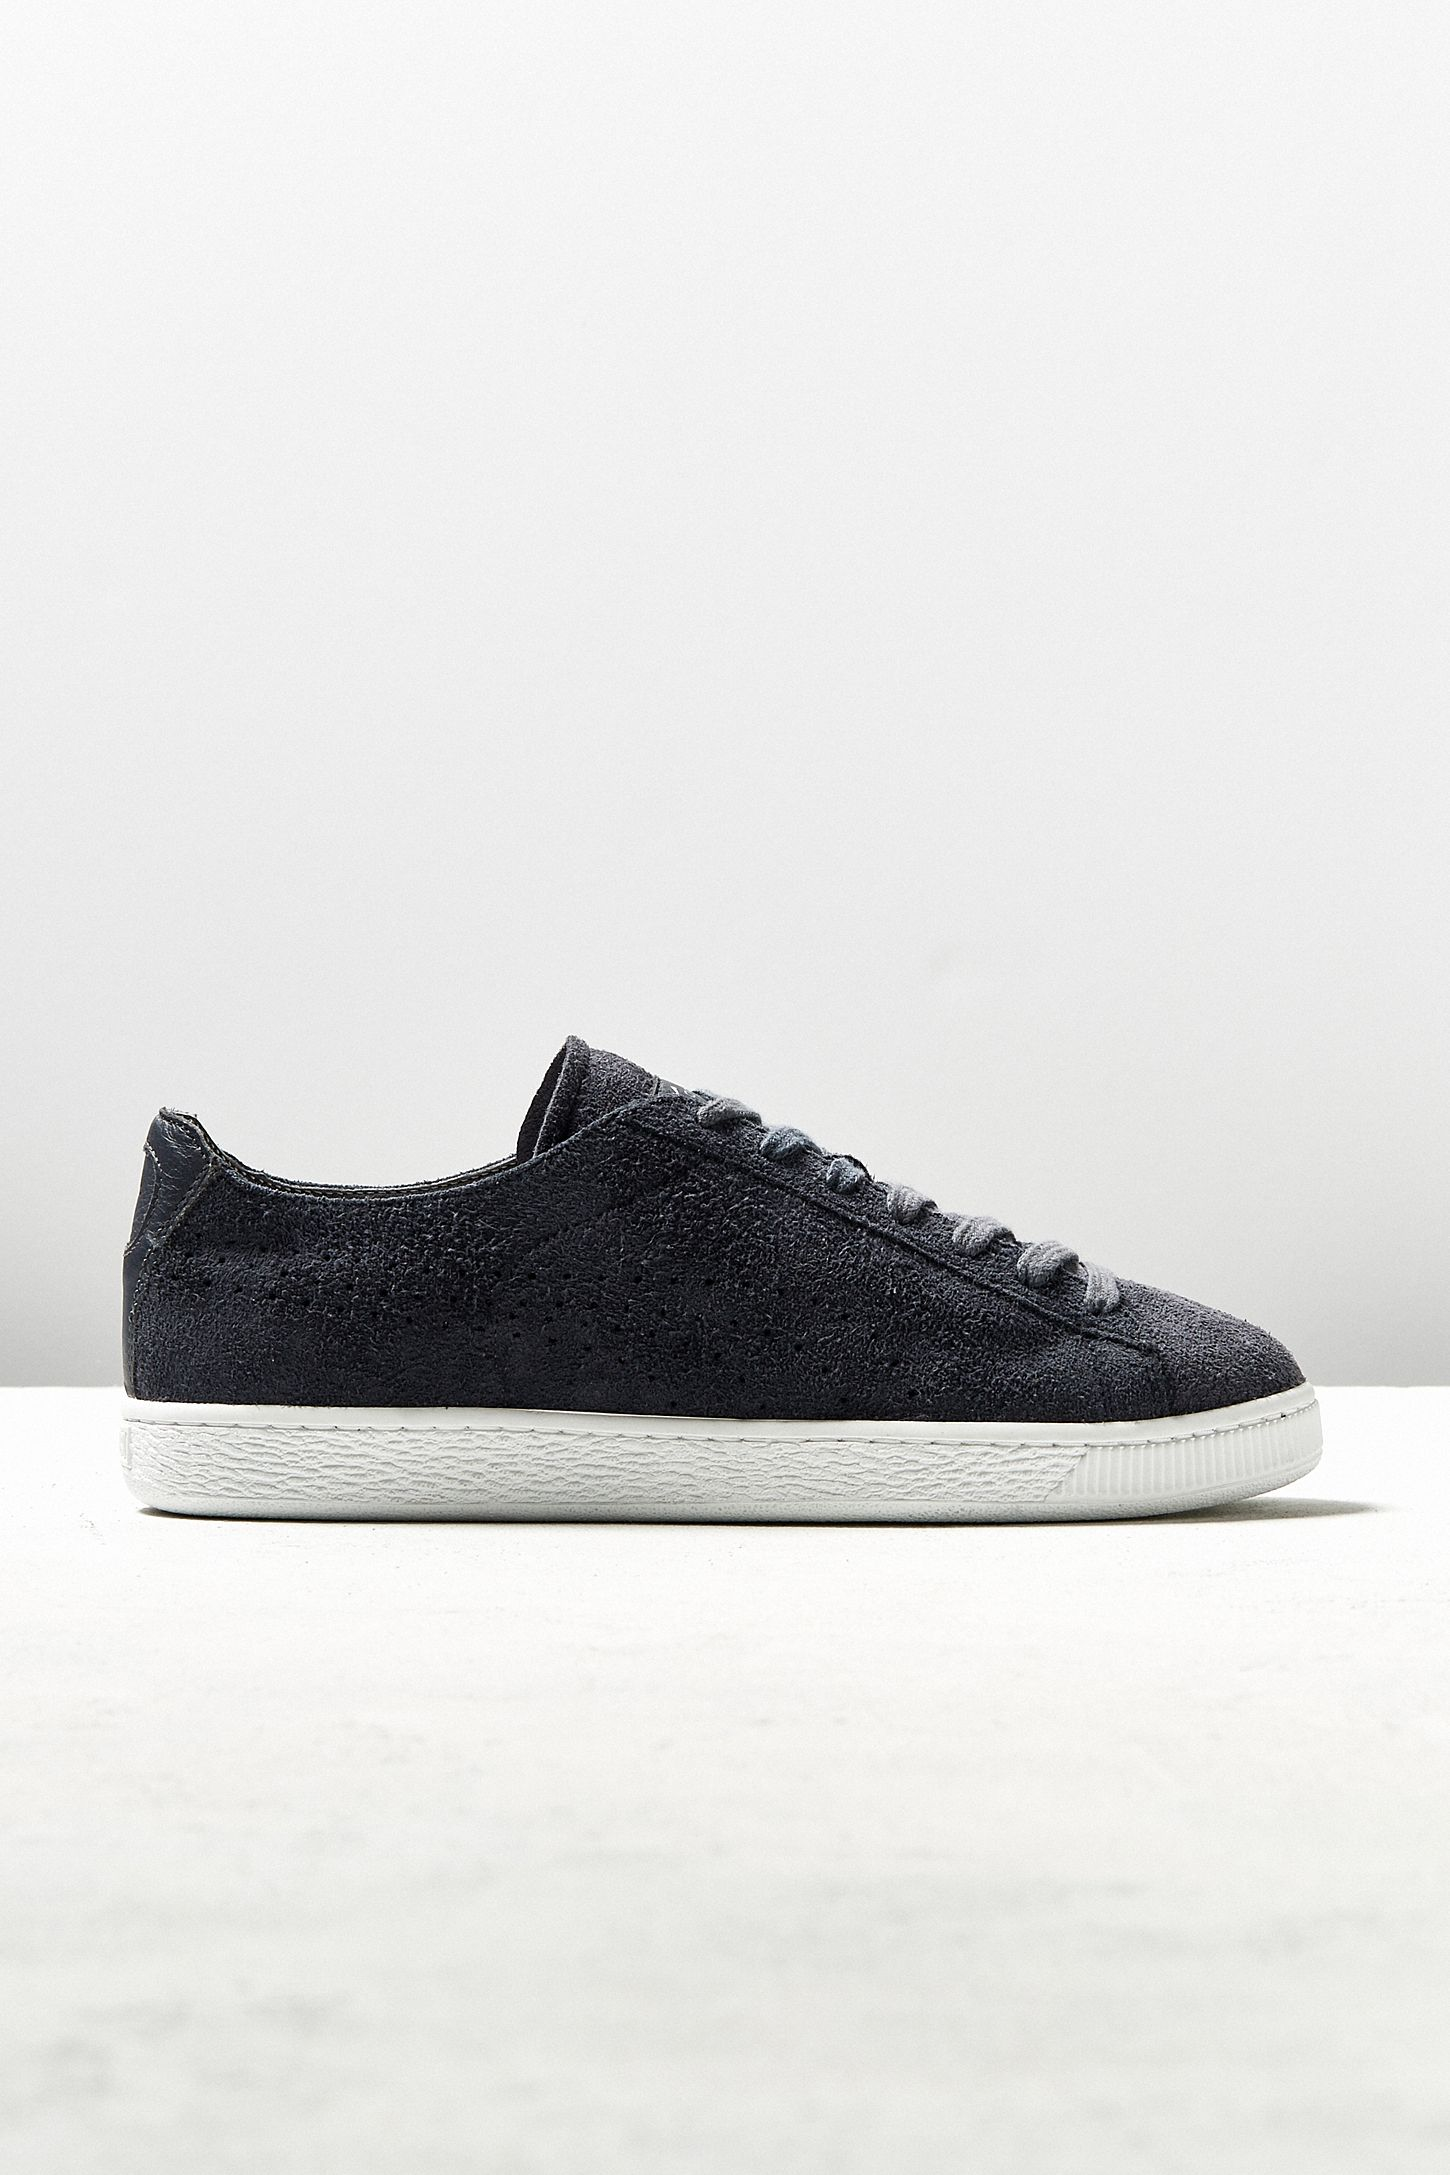 31c0091fea6 Puma X Stampd States Sneaker | Urban Outfitters